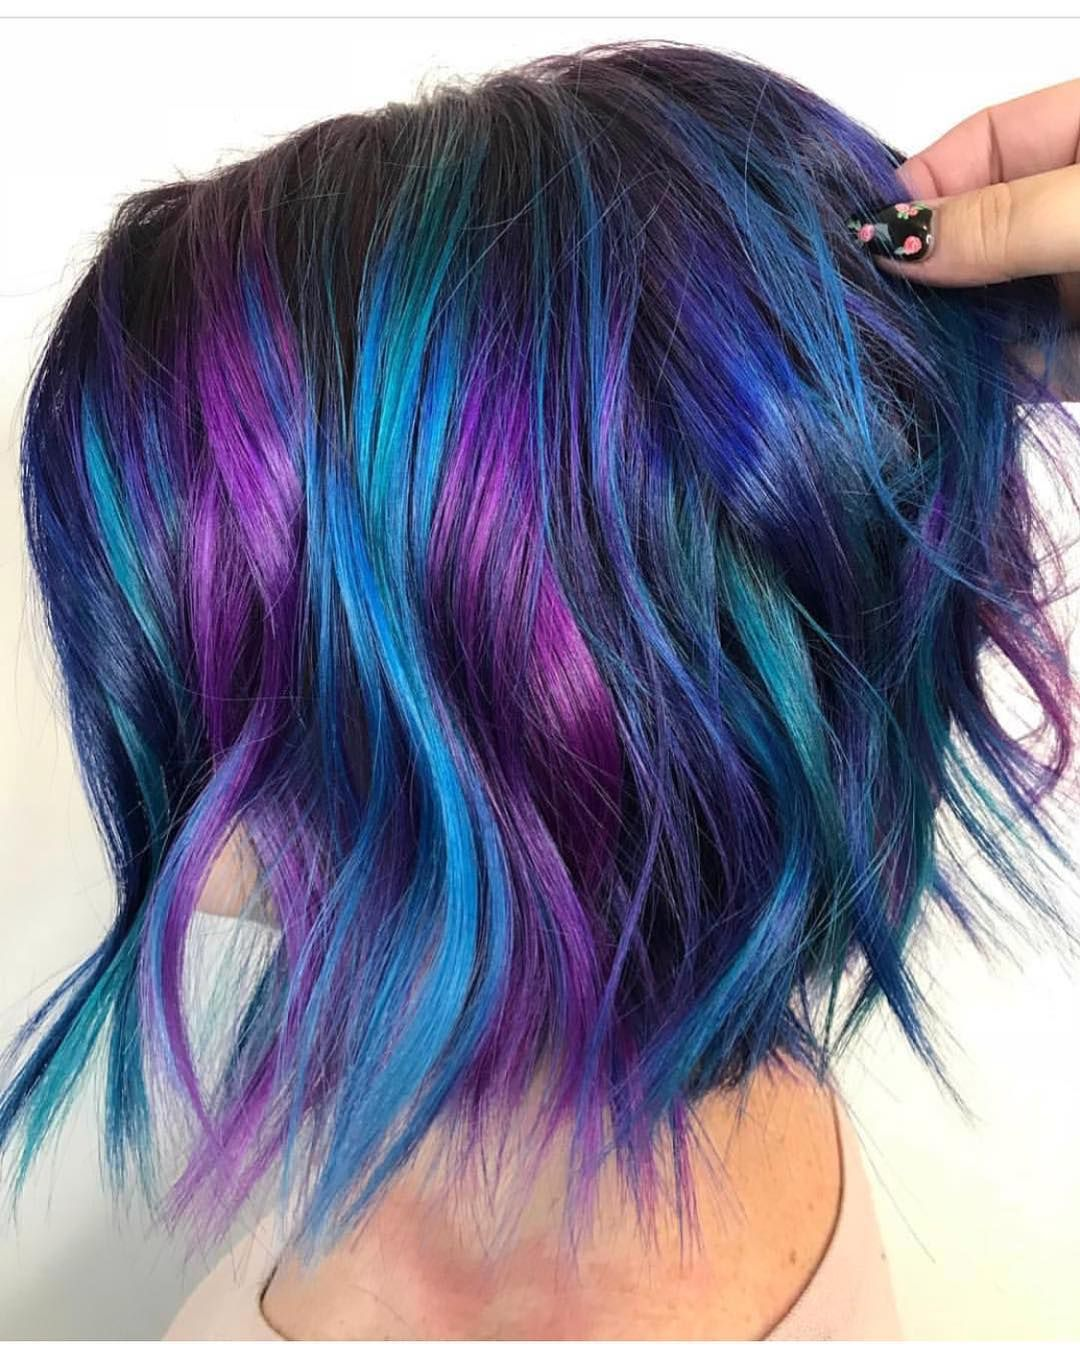 Pin by olivia on hair inspiration pinterest hair coloring